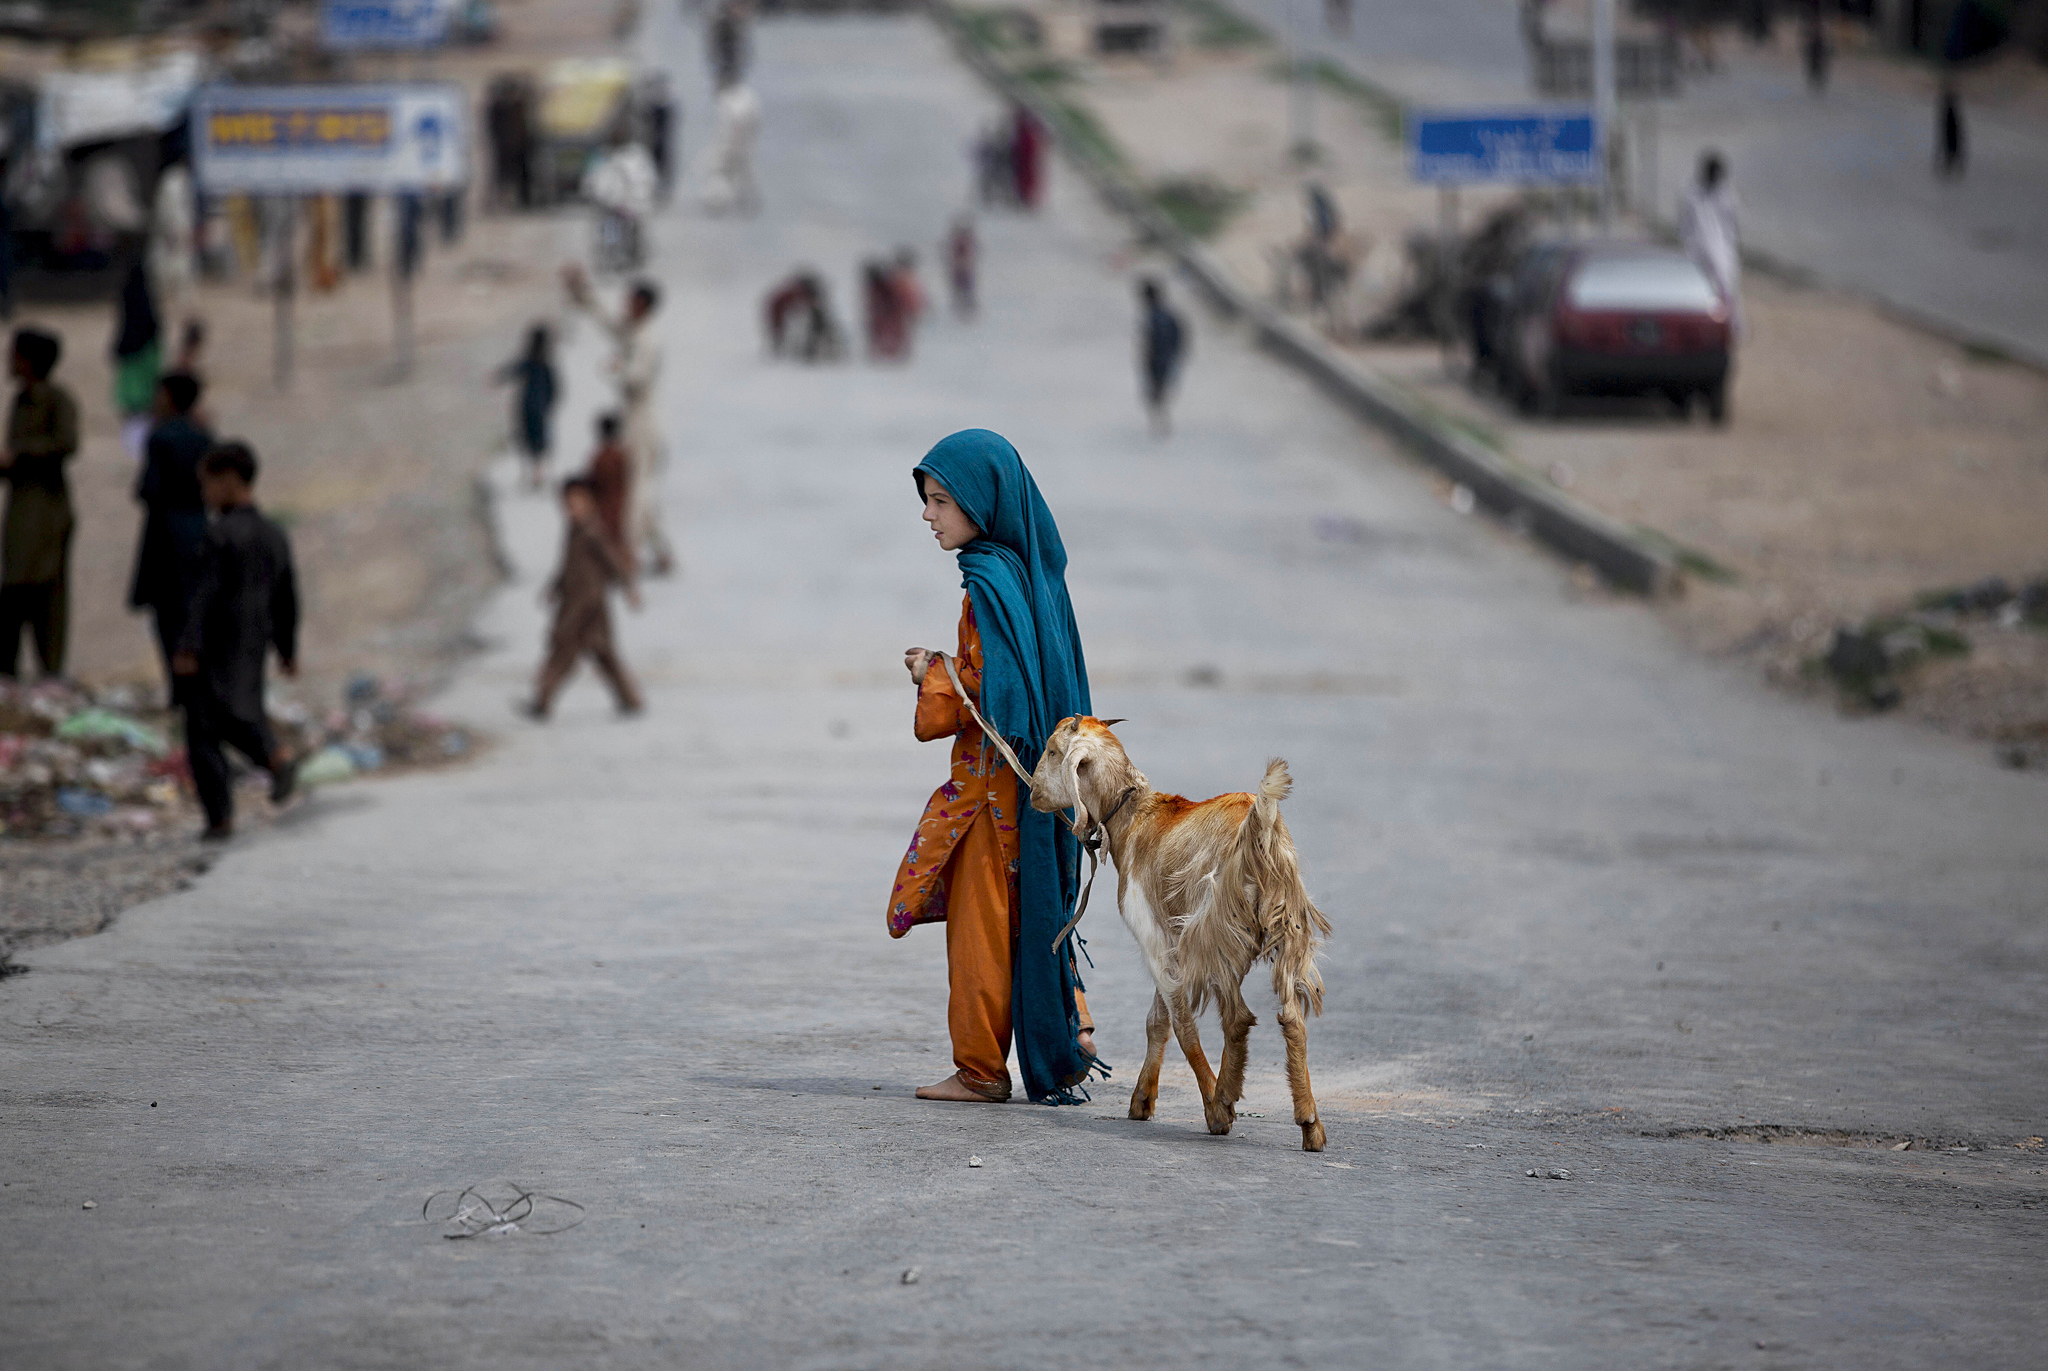 A girl drags her goat heading back home through a main road empty of traffic and full of children playing, after being blocked by the Pakistani police with shipping containers, on the outskirts of Islamabad, Pakistan, Thursday, Aug. 14, 2014. Roads leading to the Capital are being blocked in run up to announced protests by cricketer-turned-politician Imran Khan and anti-government cleric Tahir-ul-Qadri. Both men want the government to step down and new elections to be held. (AP Photo/Muhammed Muheisen)